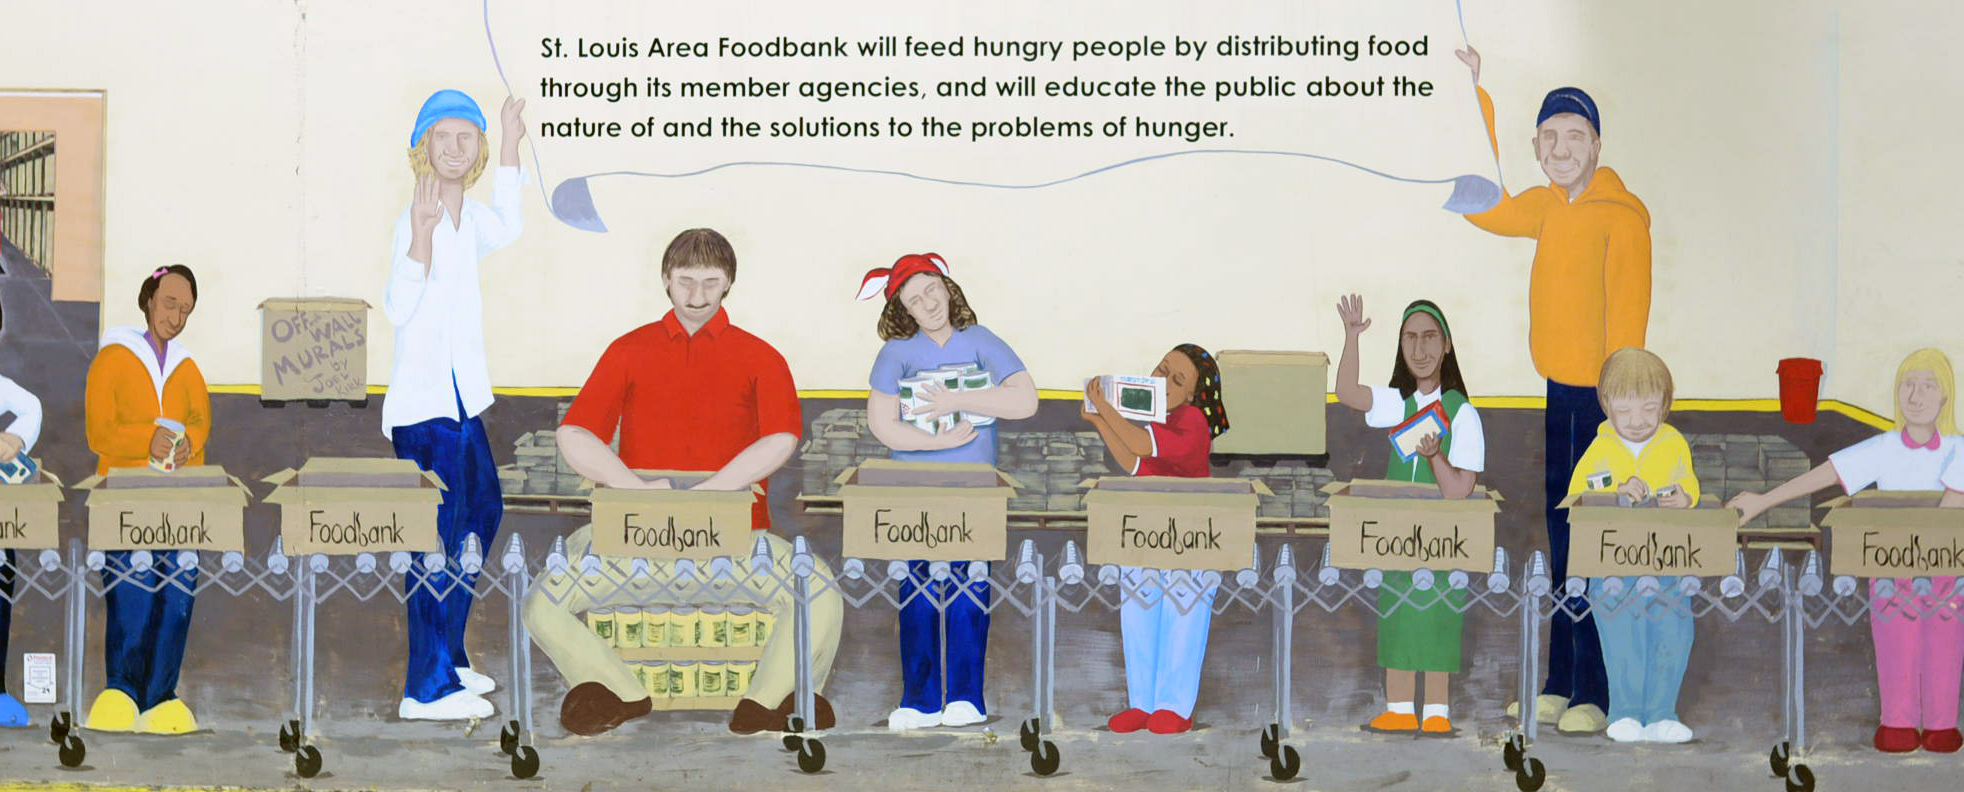 FoodBank business